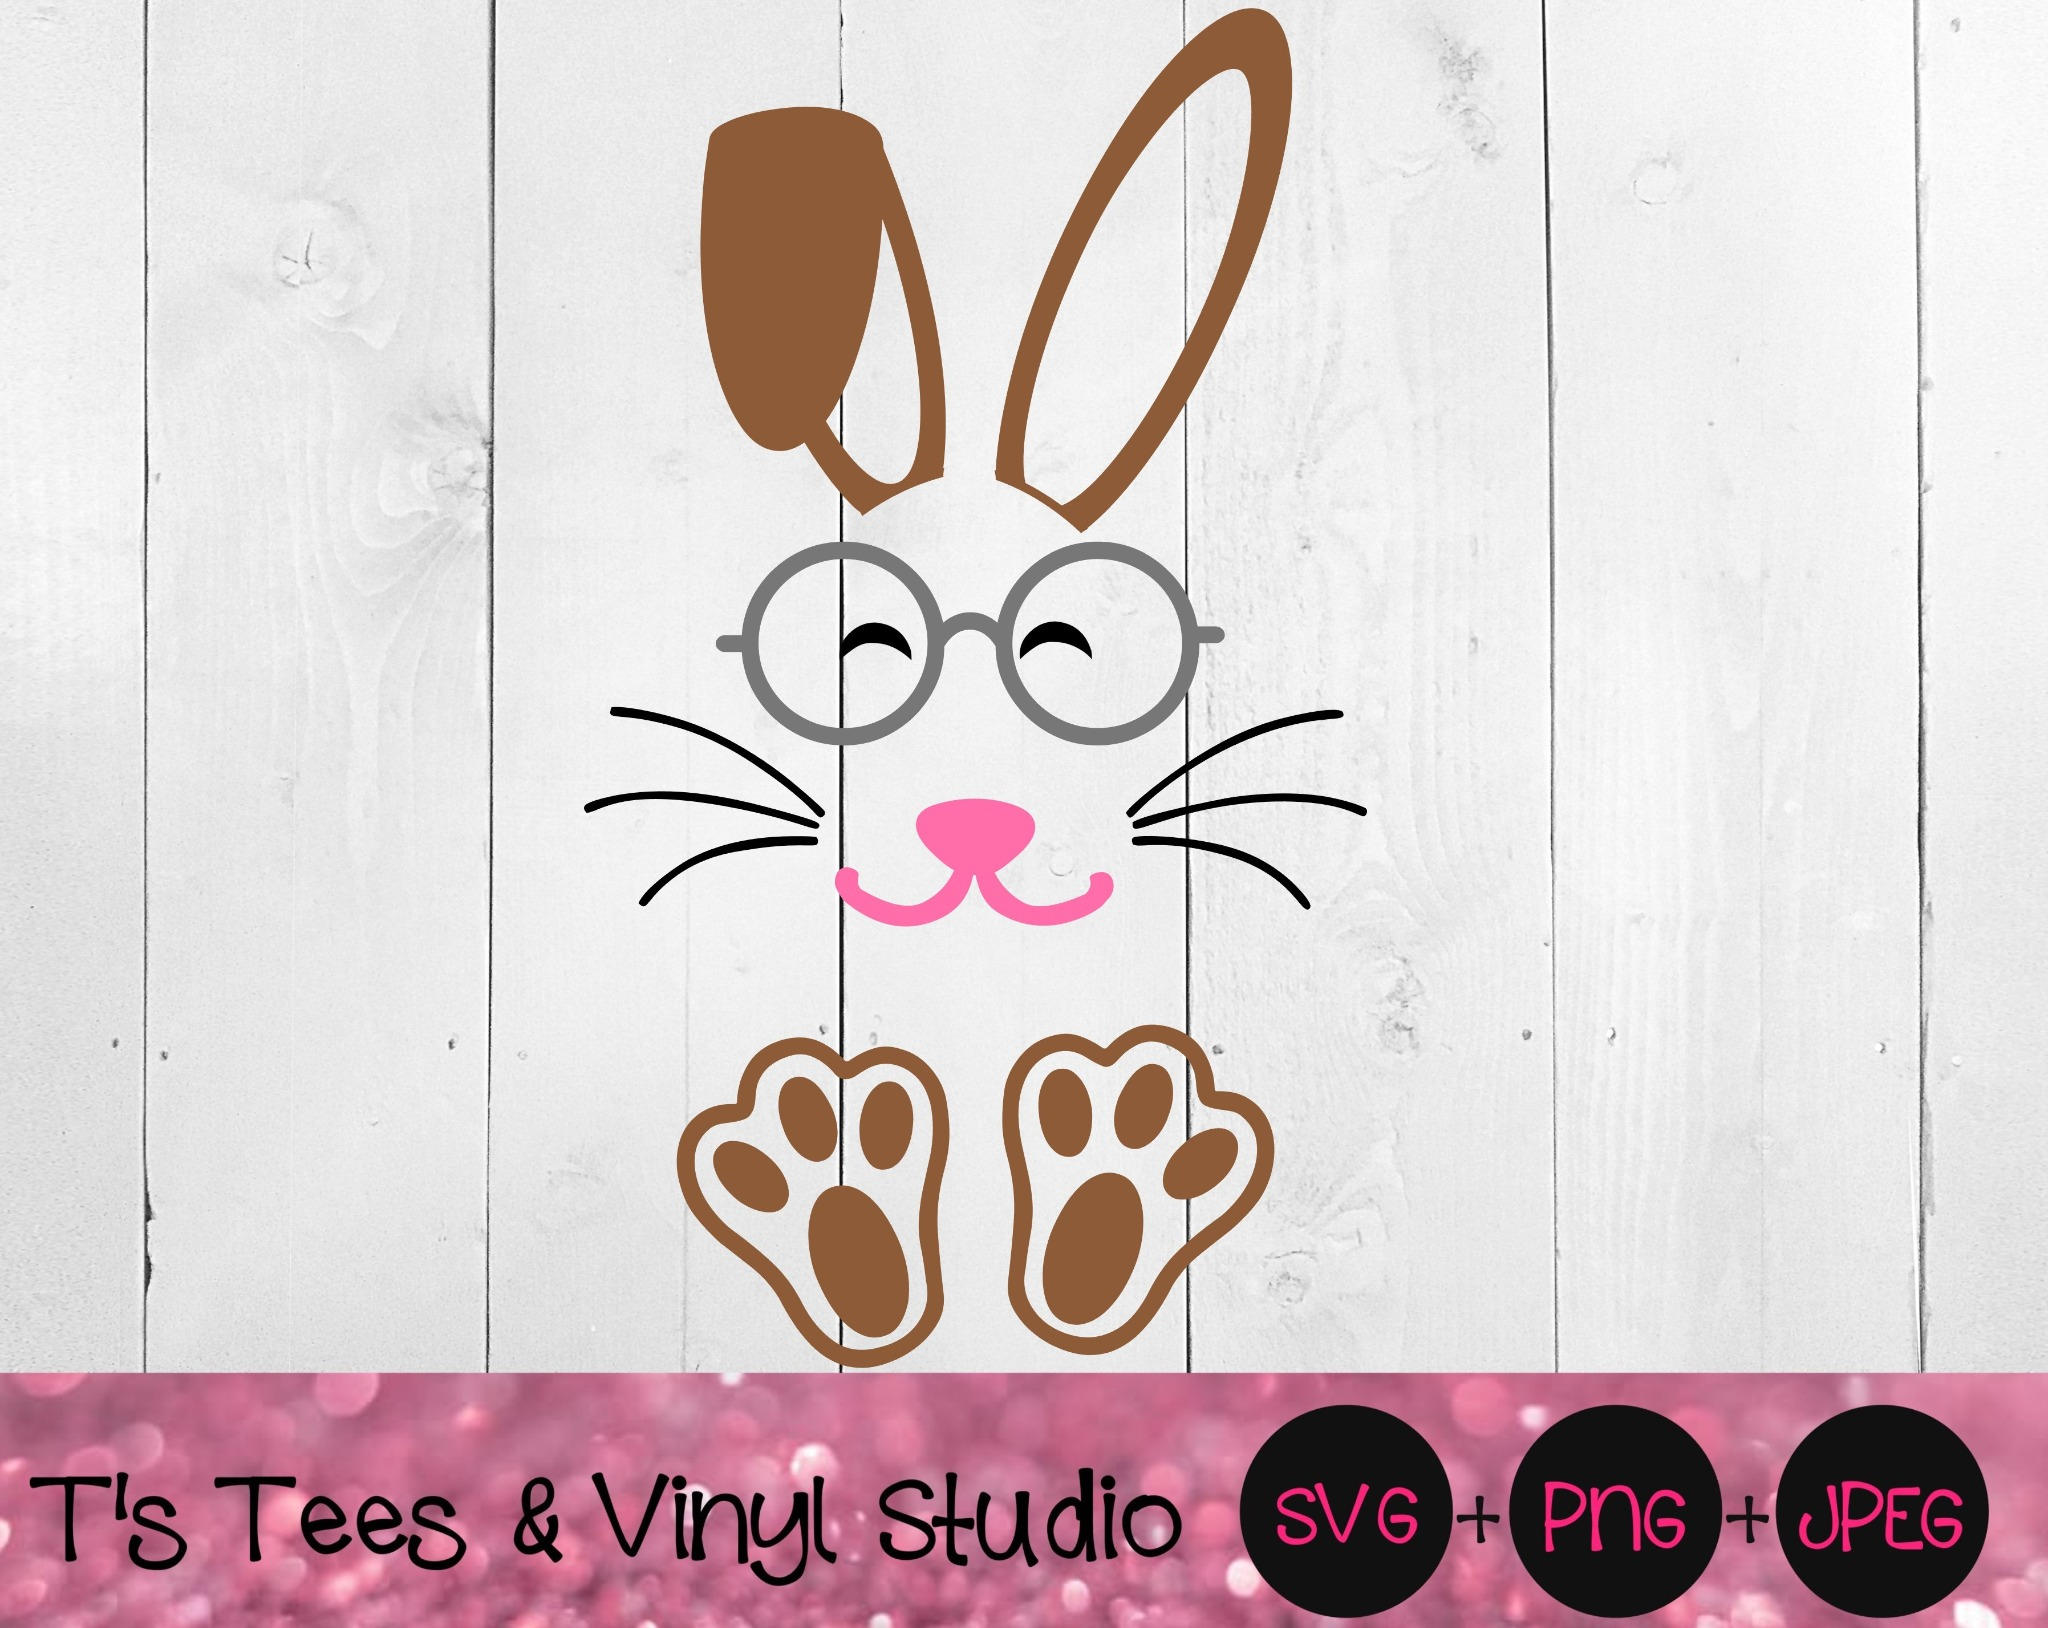 Bunny Svg, Easter Bunny Svg, Bunny With Glasses Svg, Glasses Svg, Rabbit Svg, Bunny Png, Easter